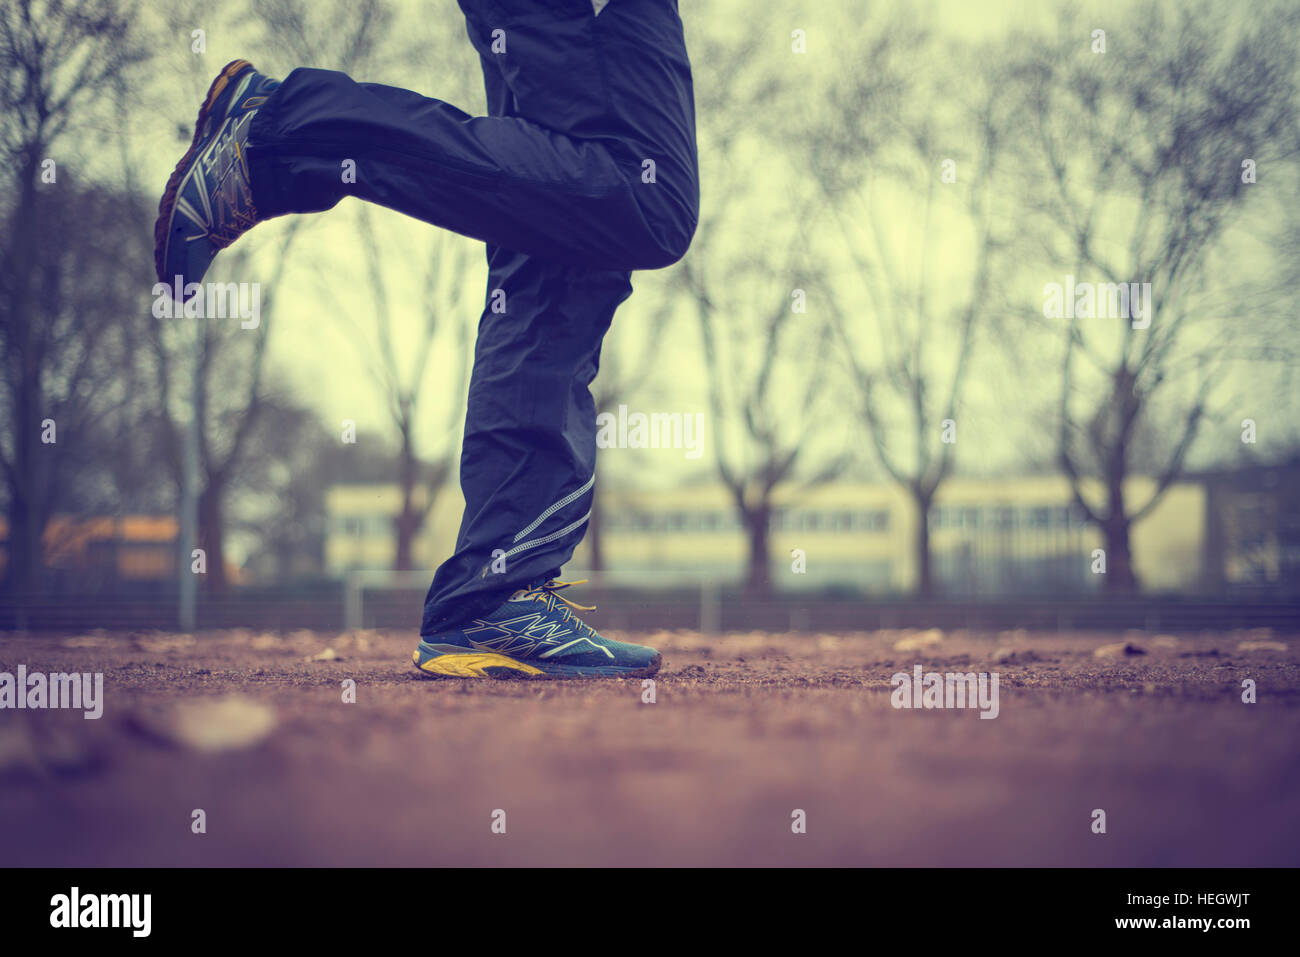 Early morning run-jogging on the stadion-sport field. - Stock Image